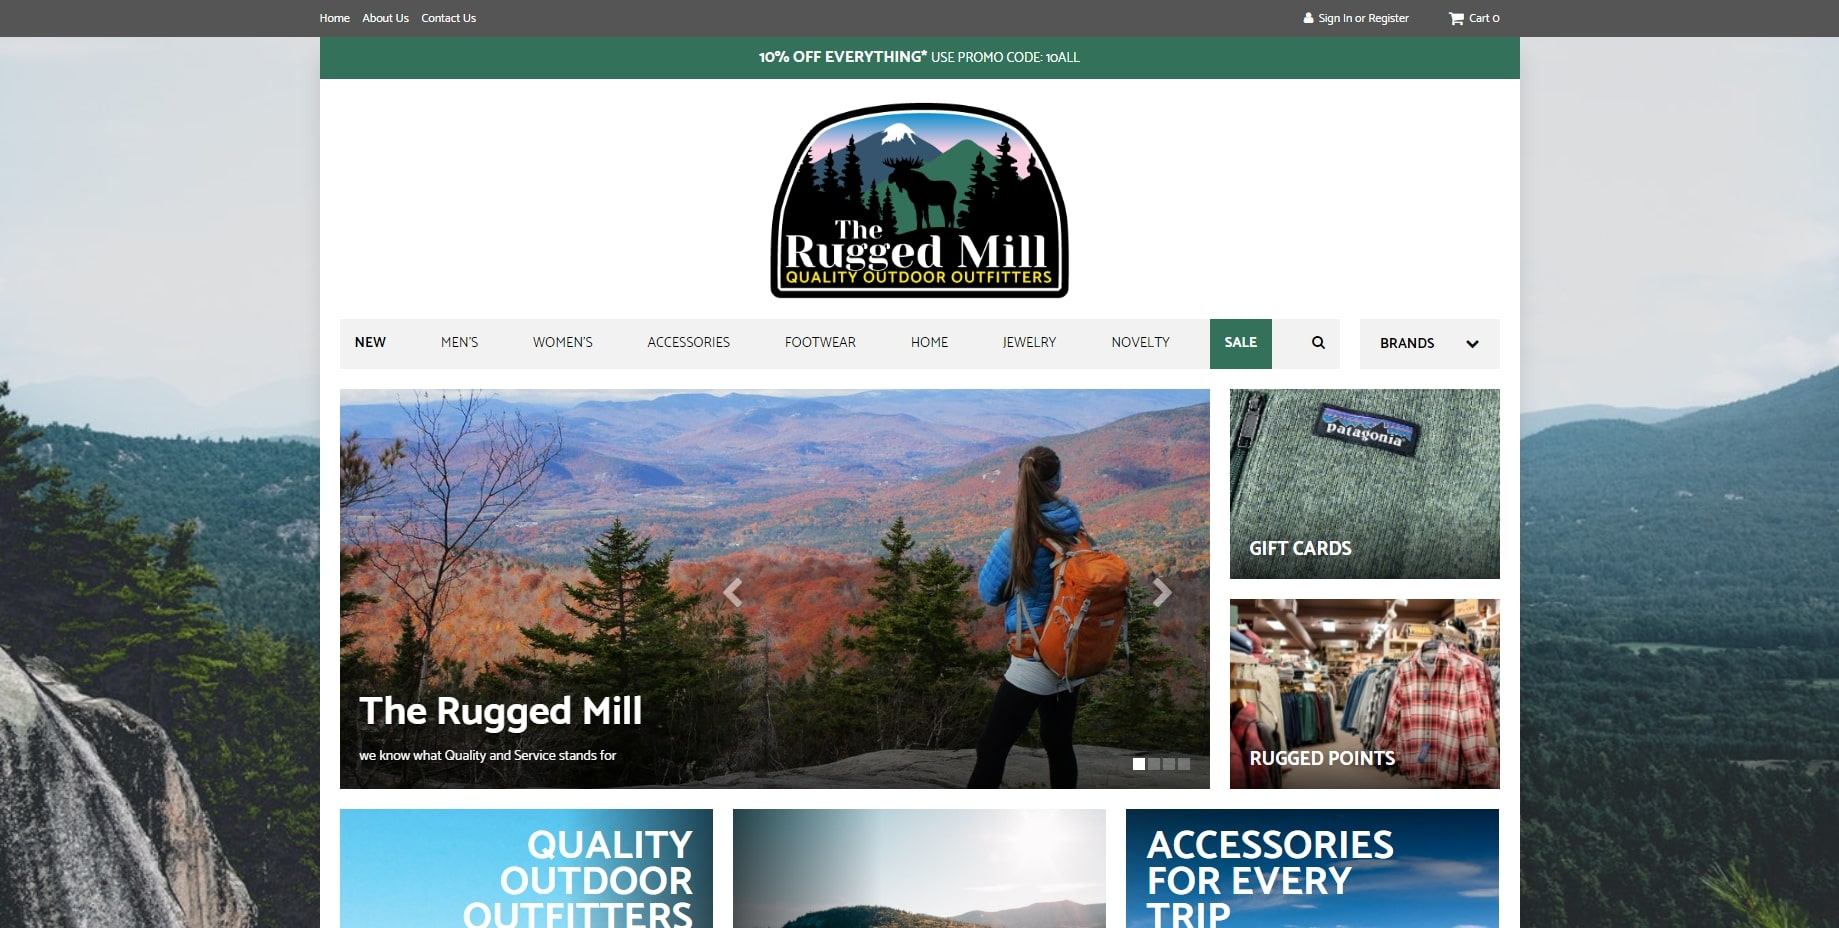 The Rugged Mill